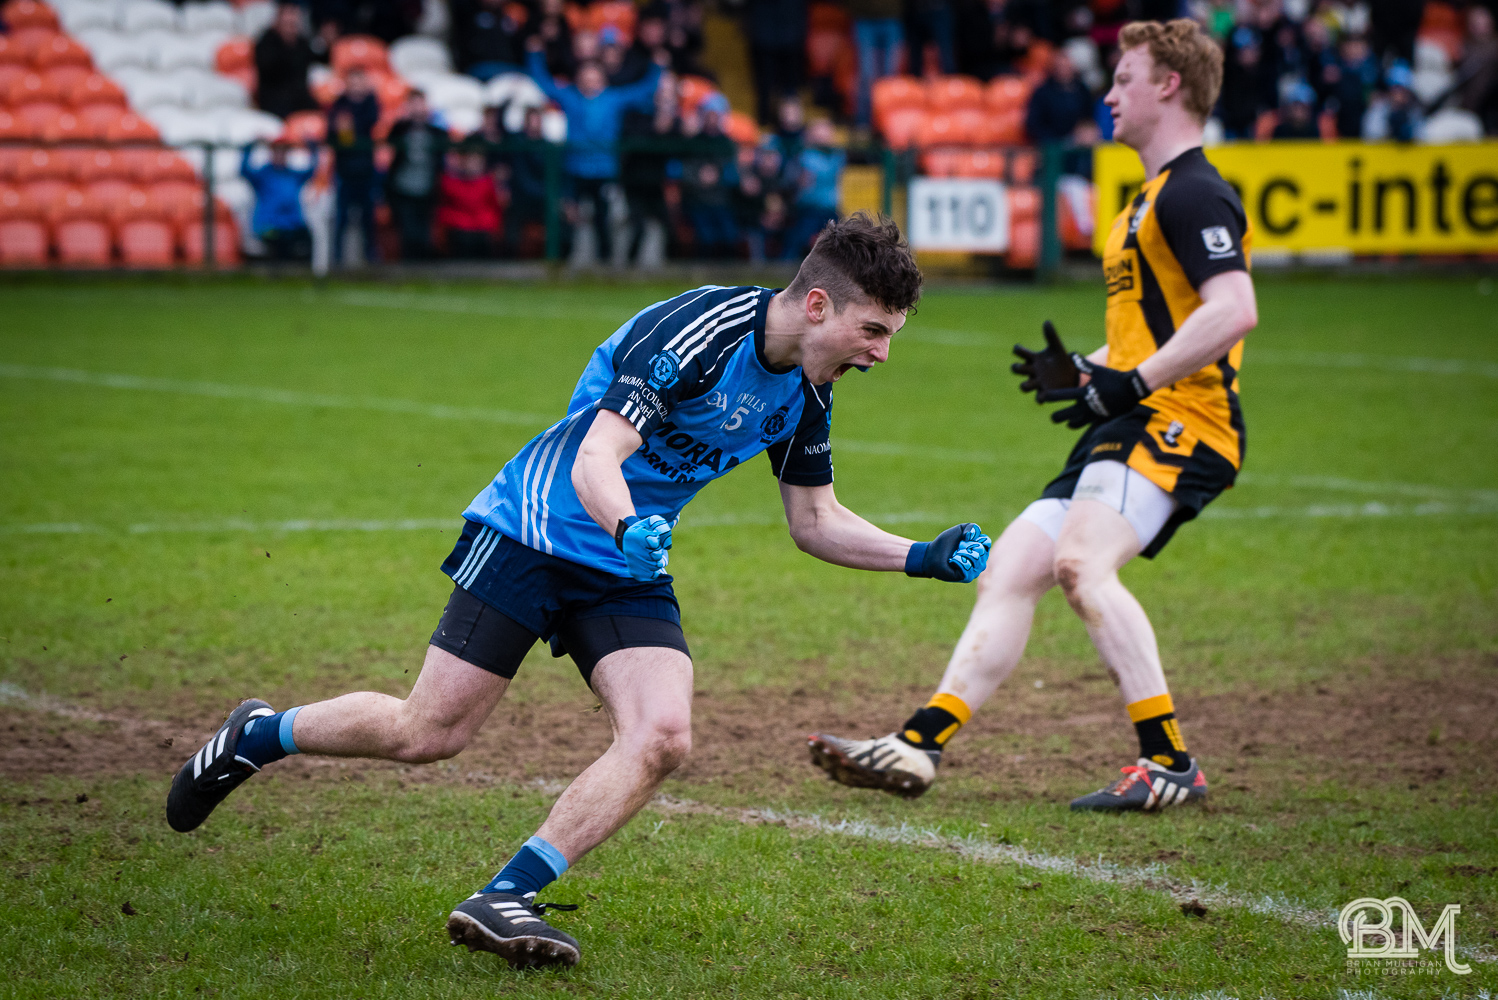 St Colmcilles through to IFC Final after win over Pomeroy